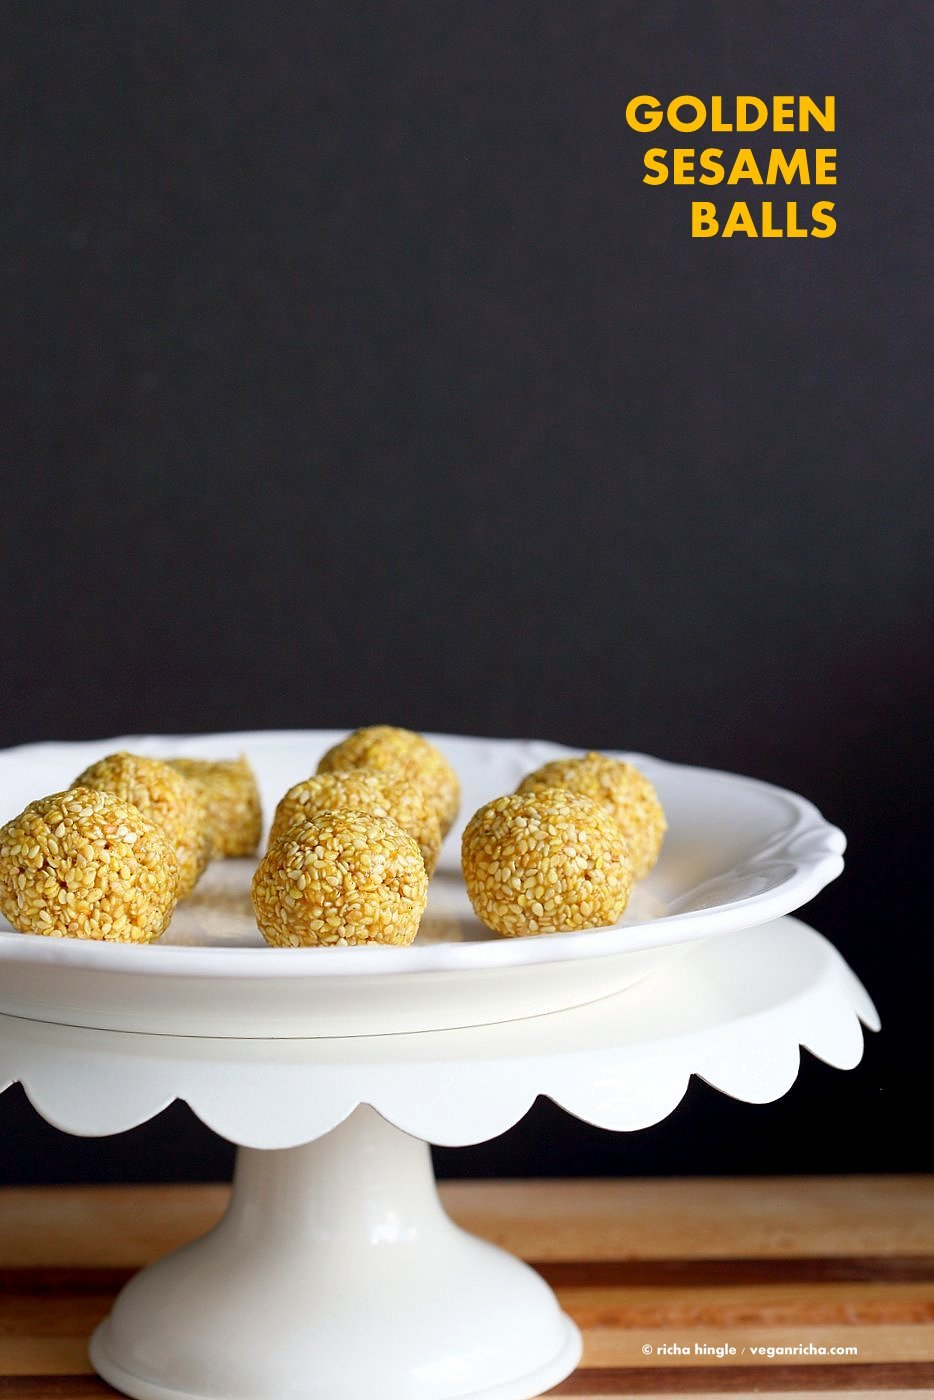 Golden Sesame Balls. Turmeric Toasted Sesame balls with Cinnamon and Cardamom. 5 Ingredient Sesame balls, or make them into bars or protein sesame bars. Vegan Gluten-free Nut-free Recipe | VeganRicha.com